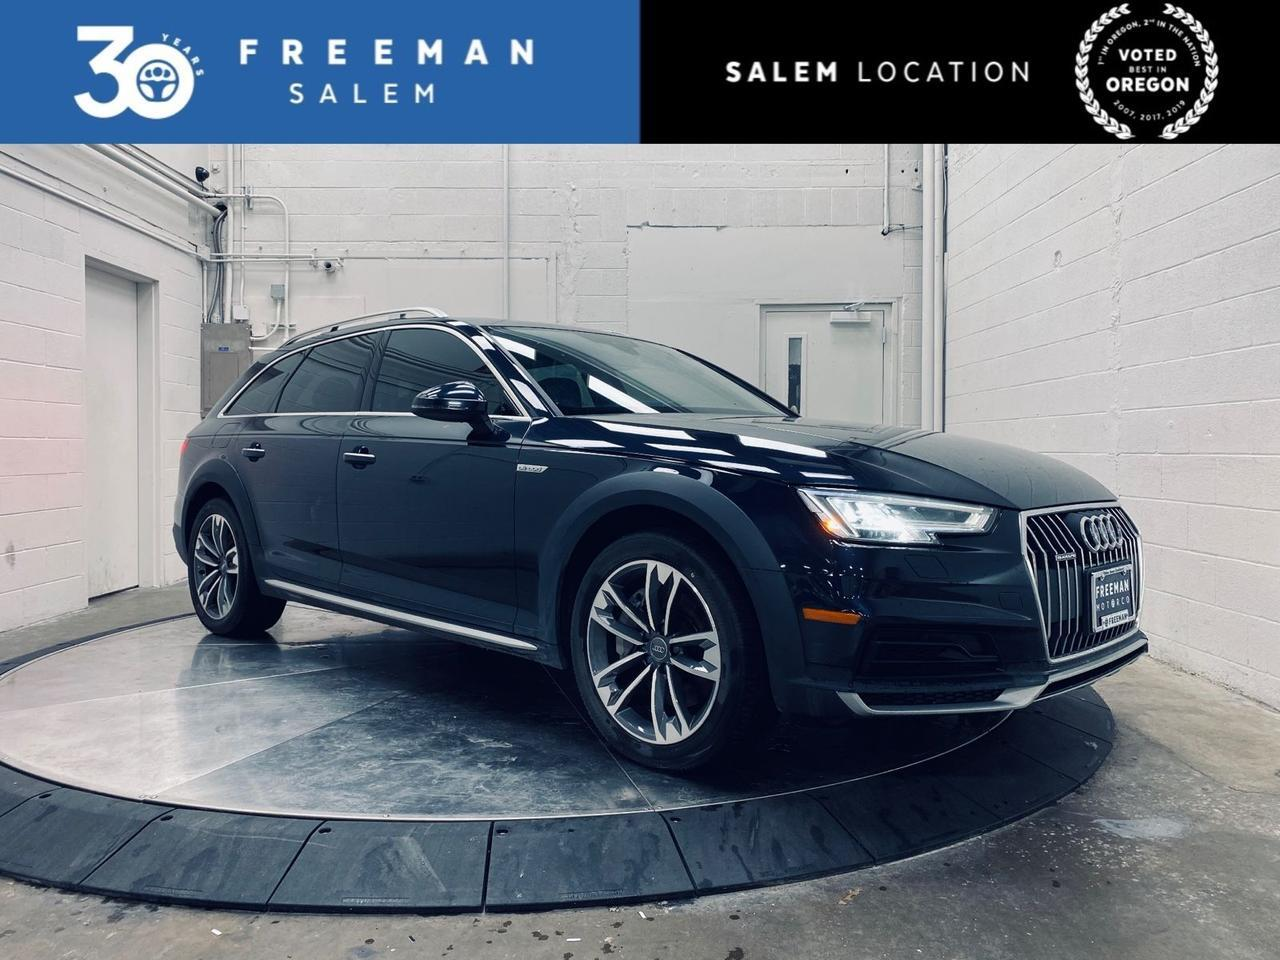 2017 Audi A4 allroad 2.0T quattro Premium Plus Virtual Cockpit Salem OR